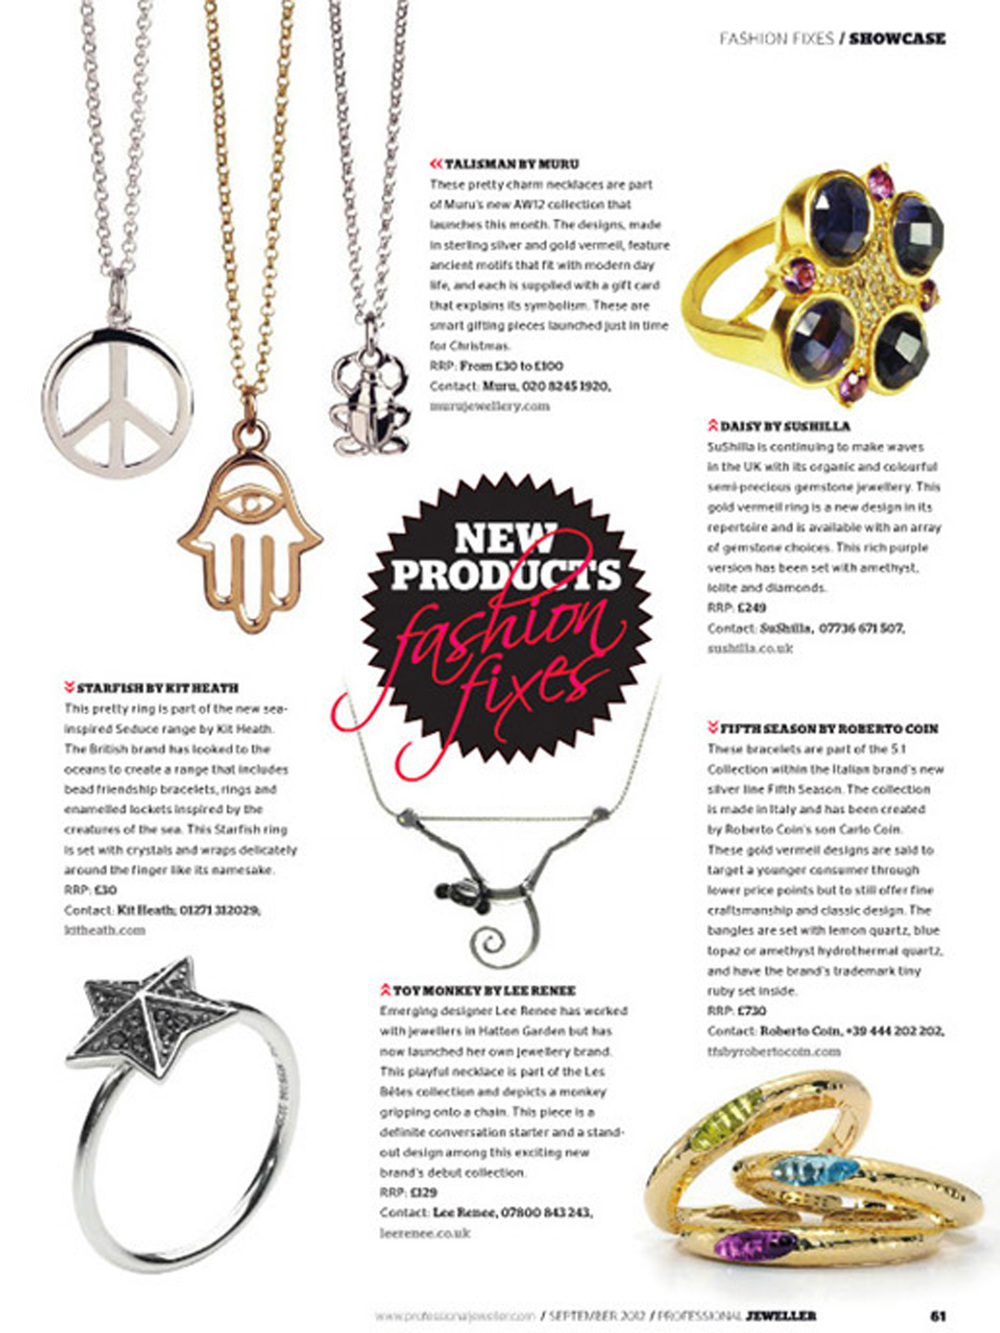 Professional Jeweller Magazine - September 2012